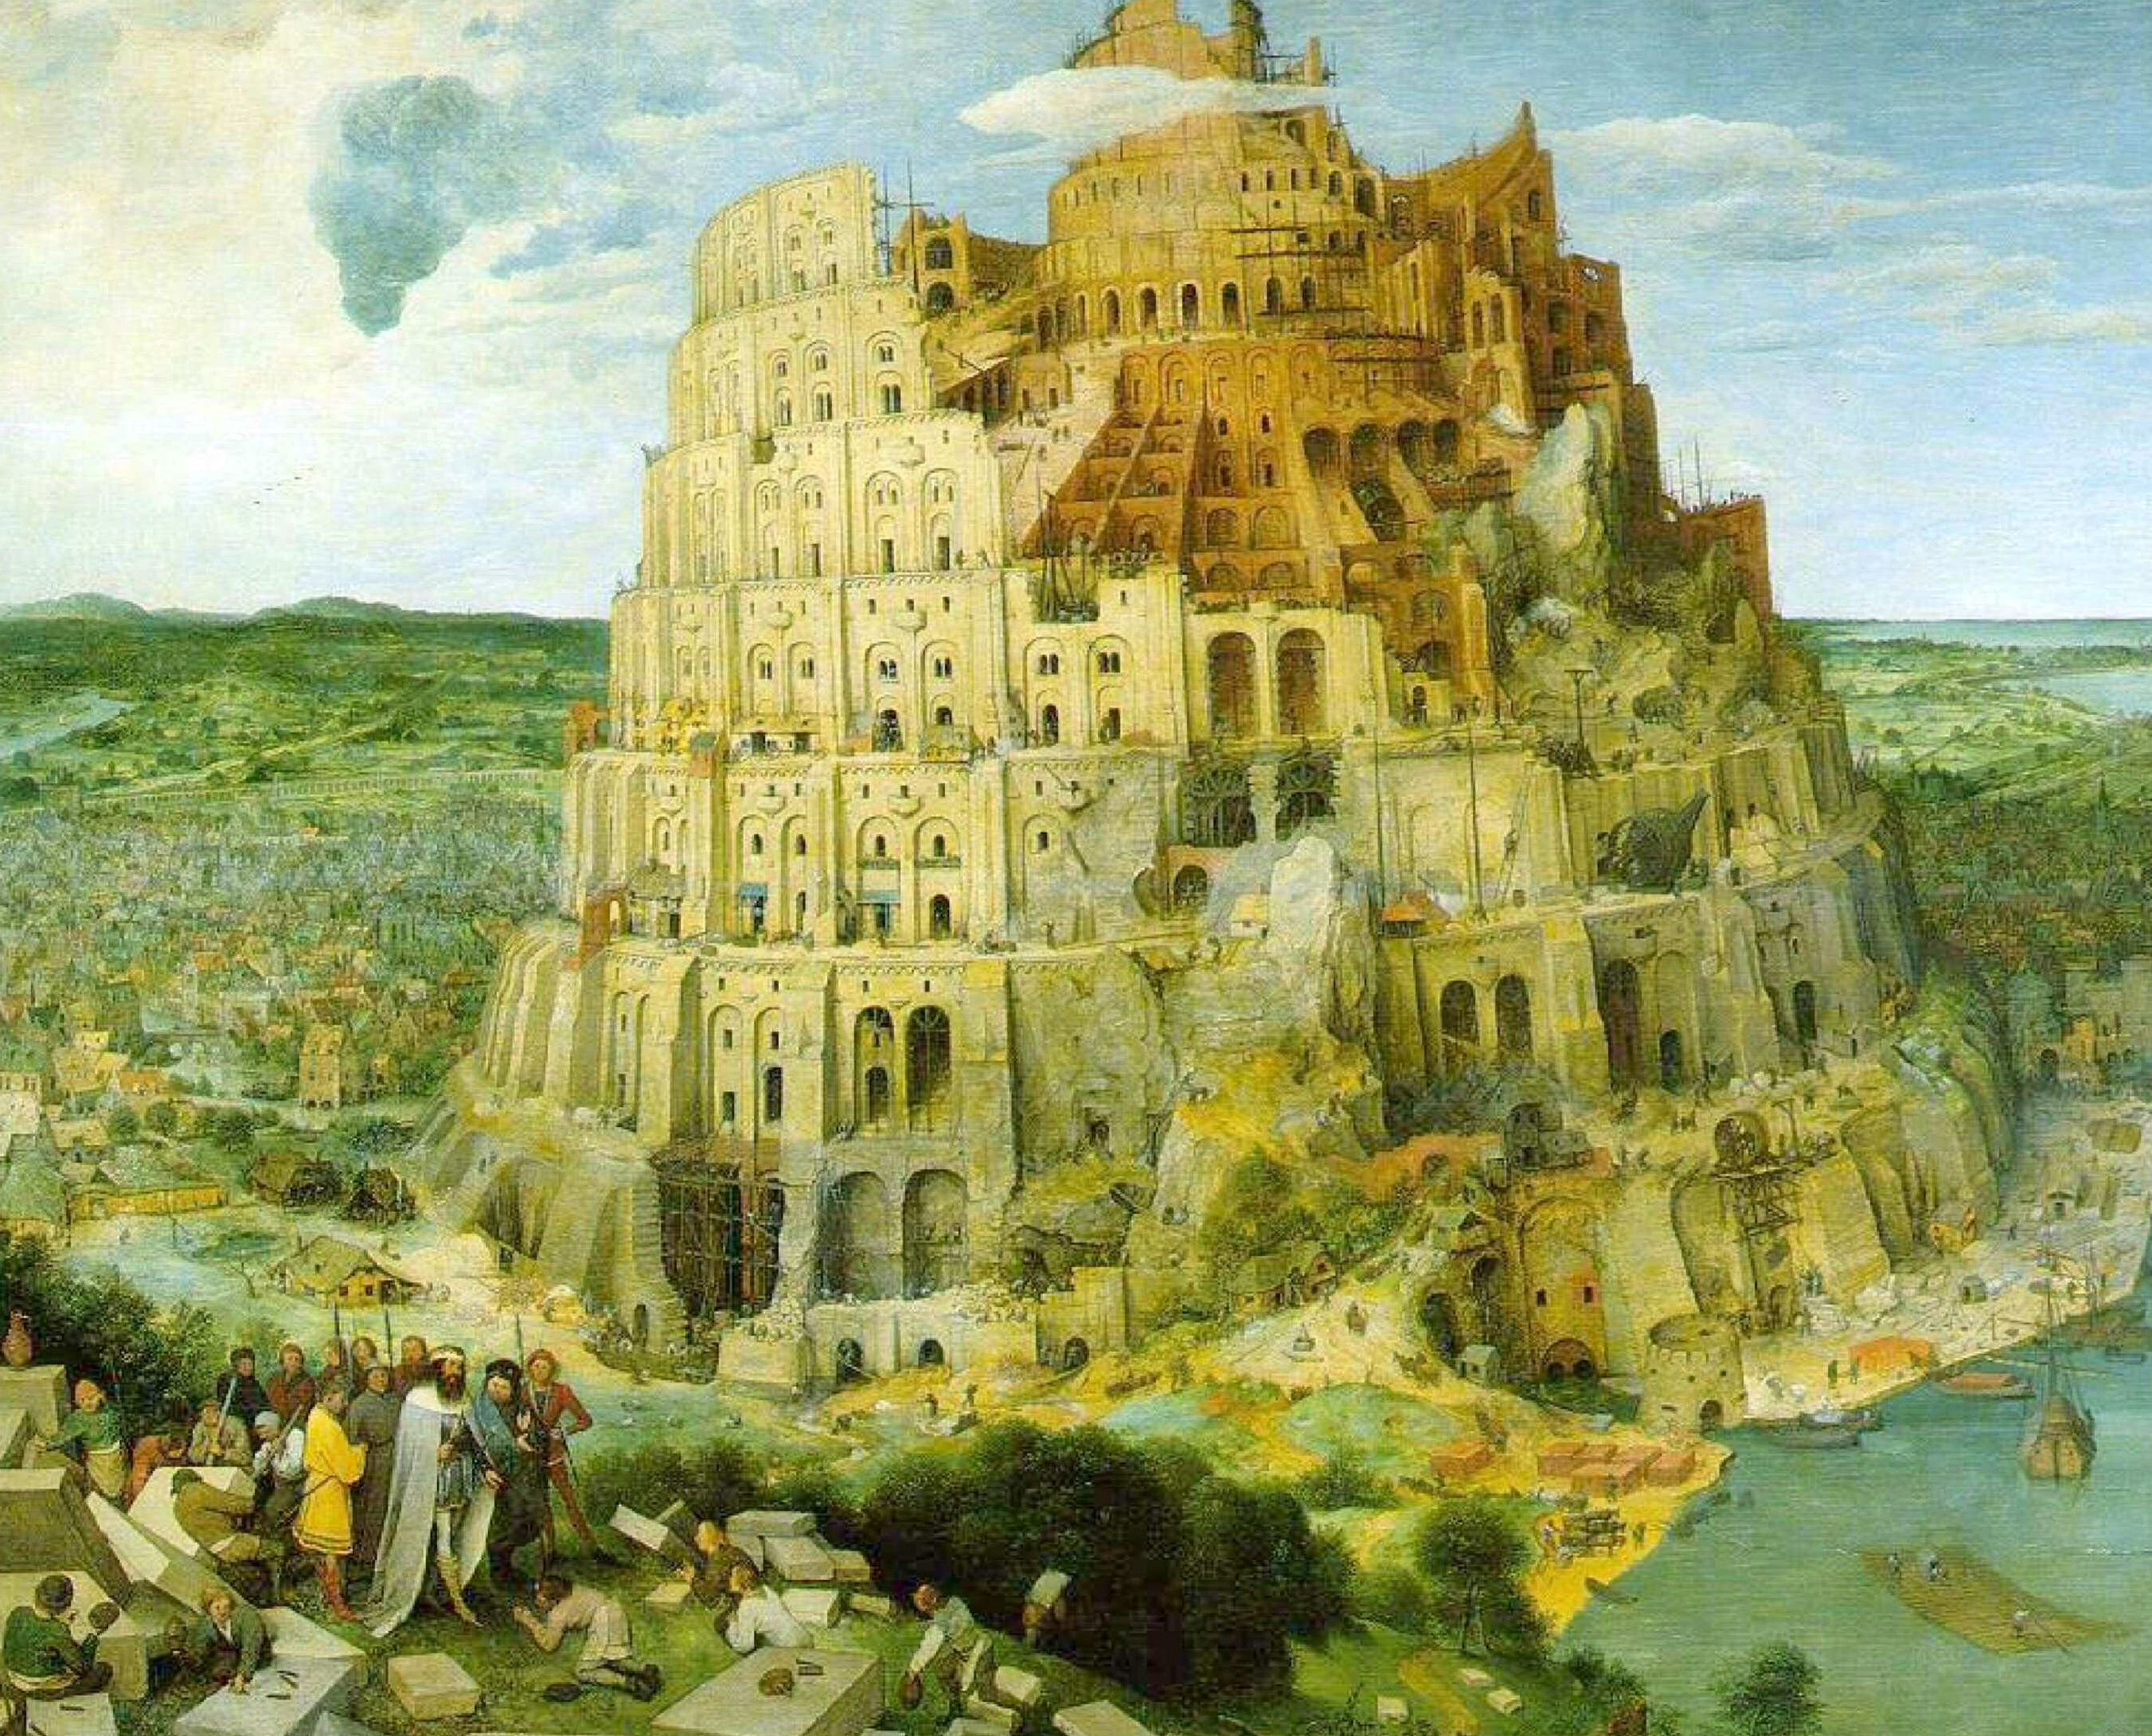 A picture of the Tower of Babylon